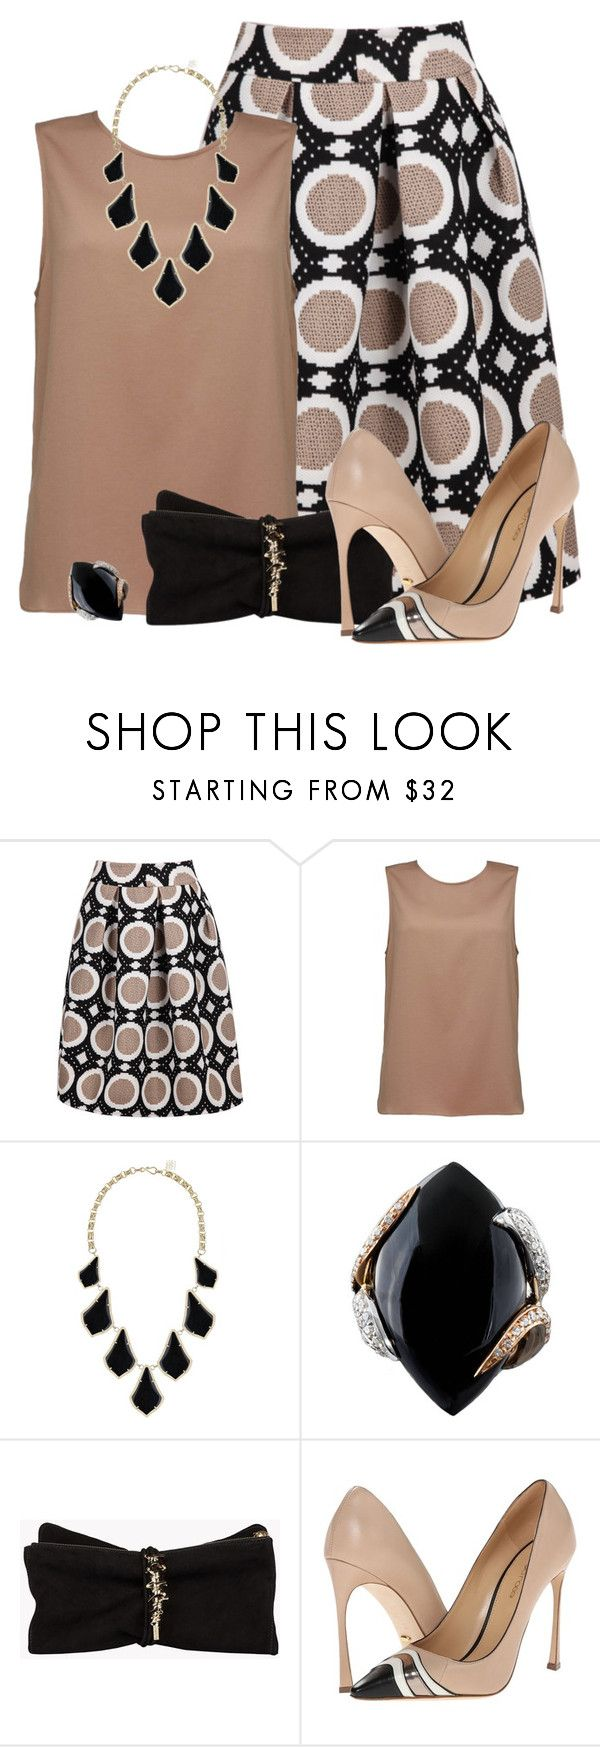 """Eva"" by rotwein ❤ liked on Polyvore featuring Kendra Scott, Luca Carati, Dsquared2 and Sergio Rossi"